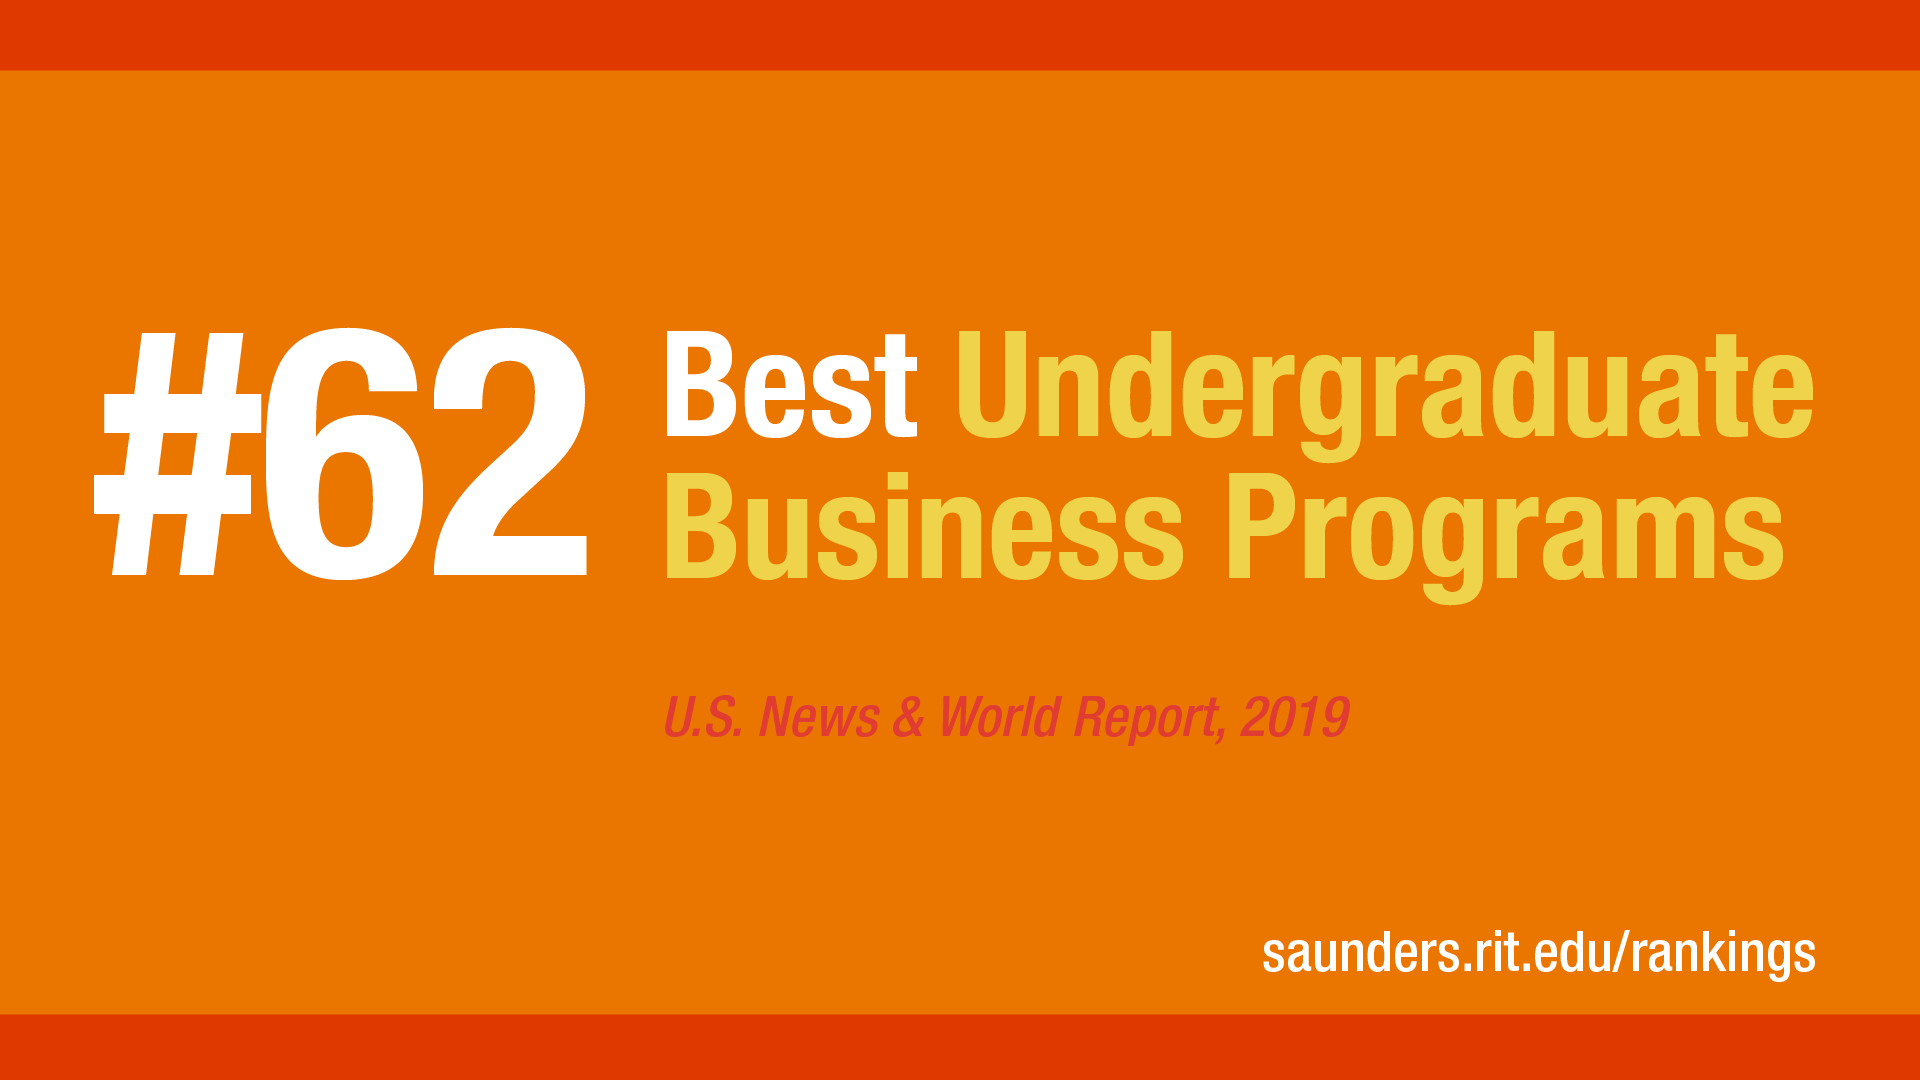 Best Undergraduate Business Program #62